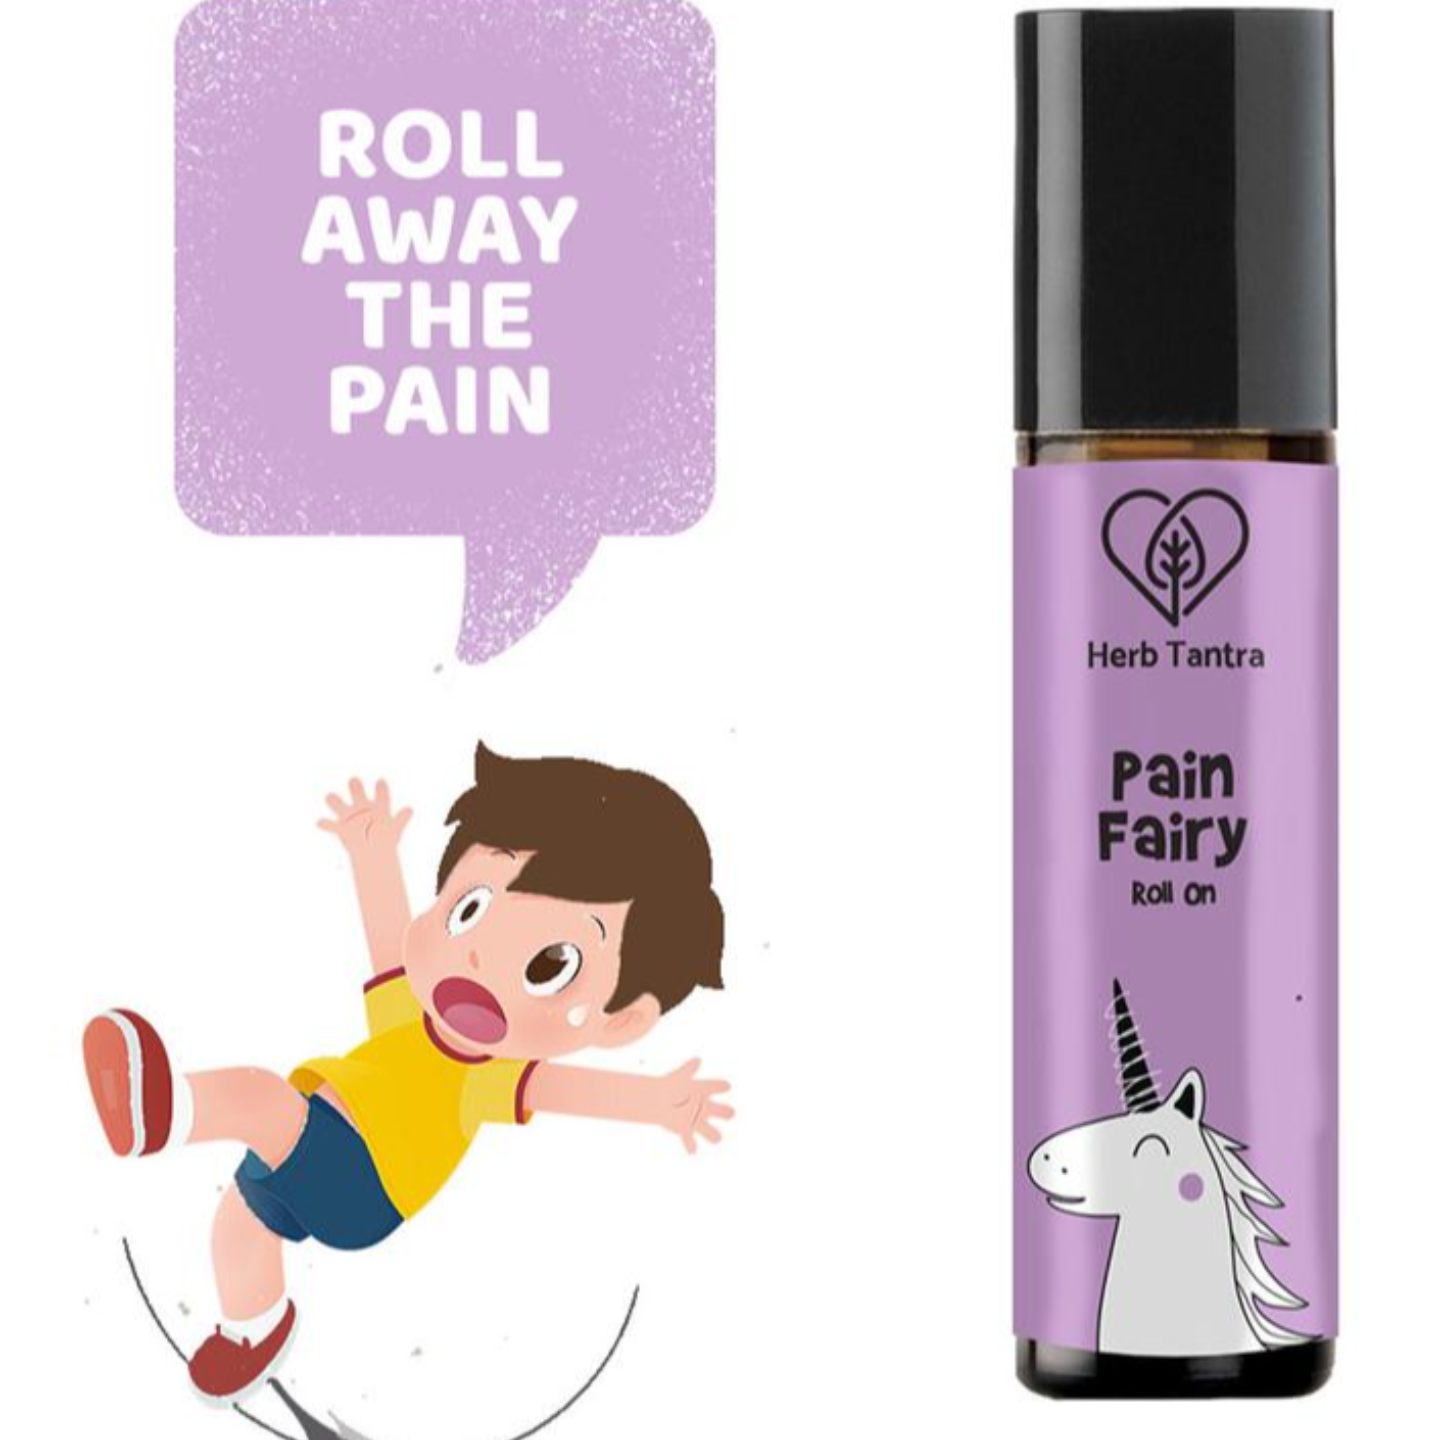 Herb Tantra Pain Fairy Roll On Pain Relief For Kids (9 ml)